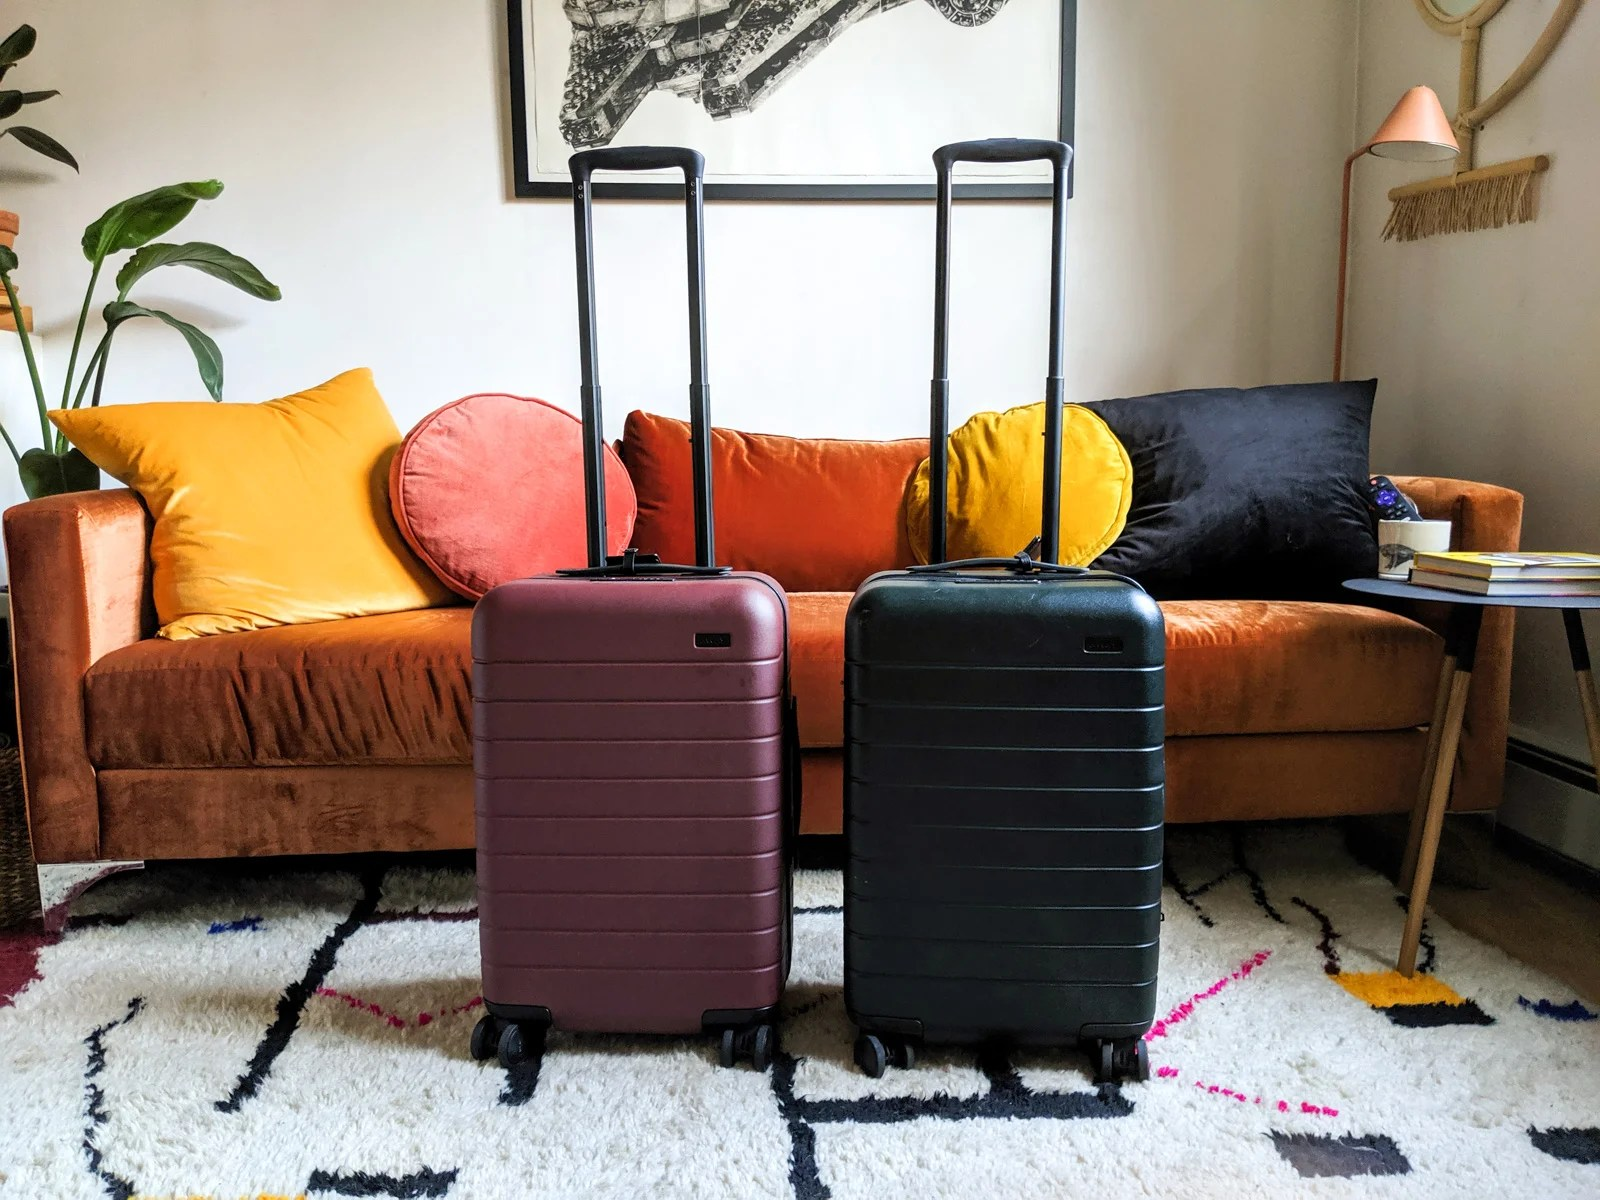 Luggage review: Putting the Away carry-on to the test